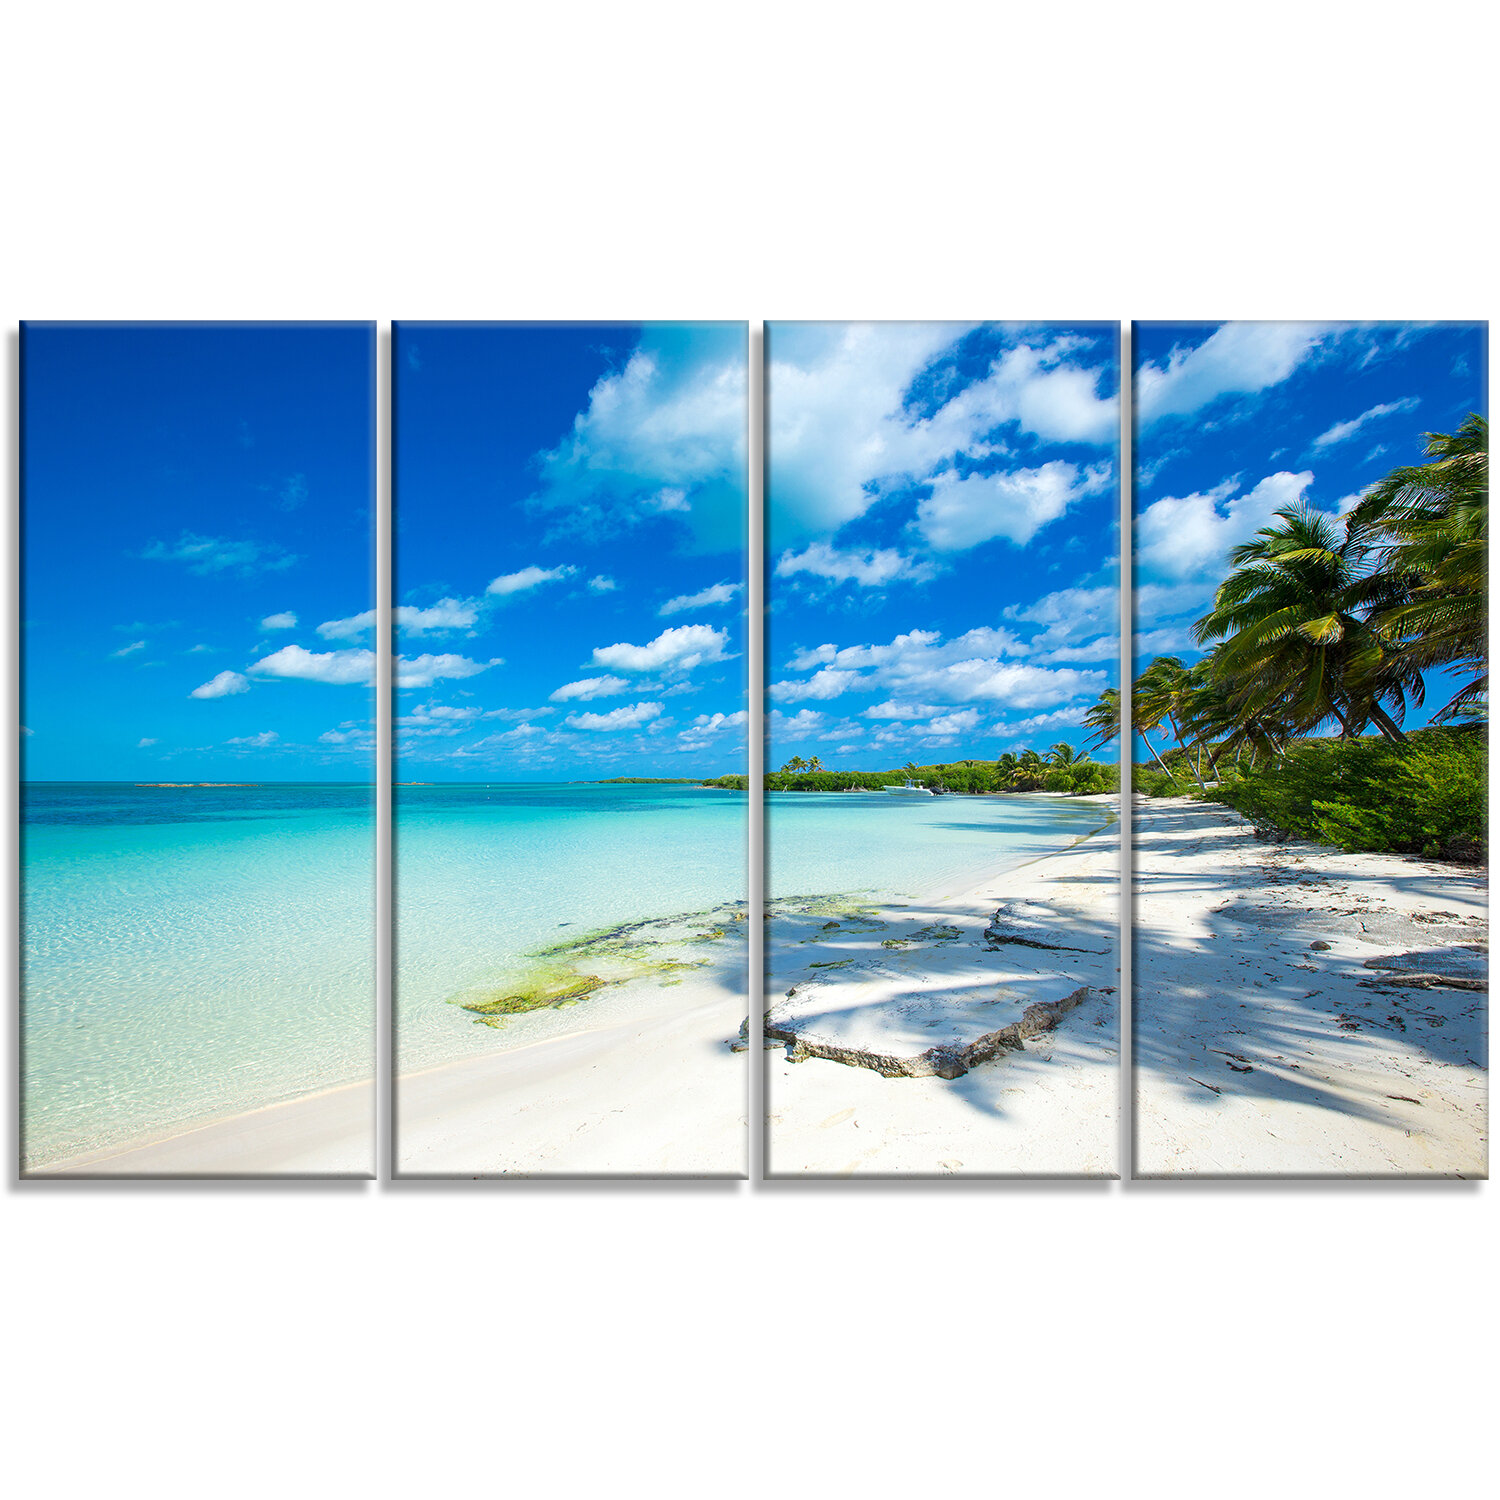 Designart Tropical Beach With Palm Shadows 4 Piece Photographic Print On Wrapped Canvas Set In Blue Wayfair